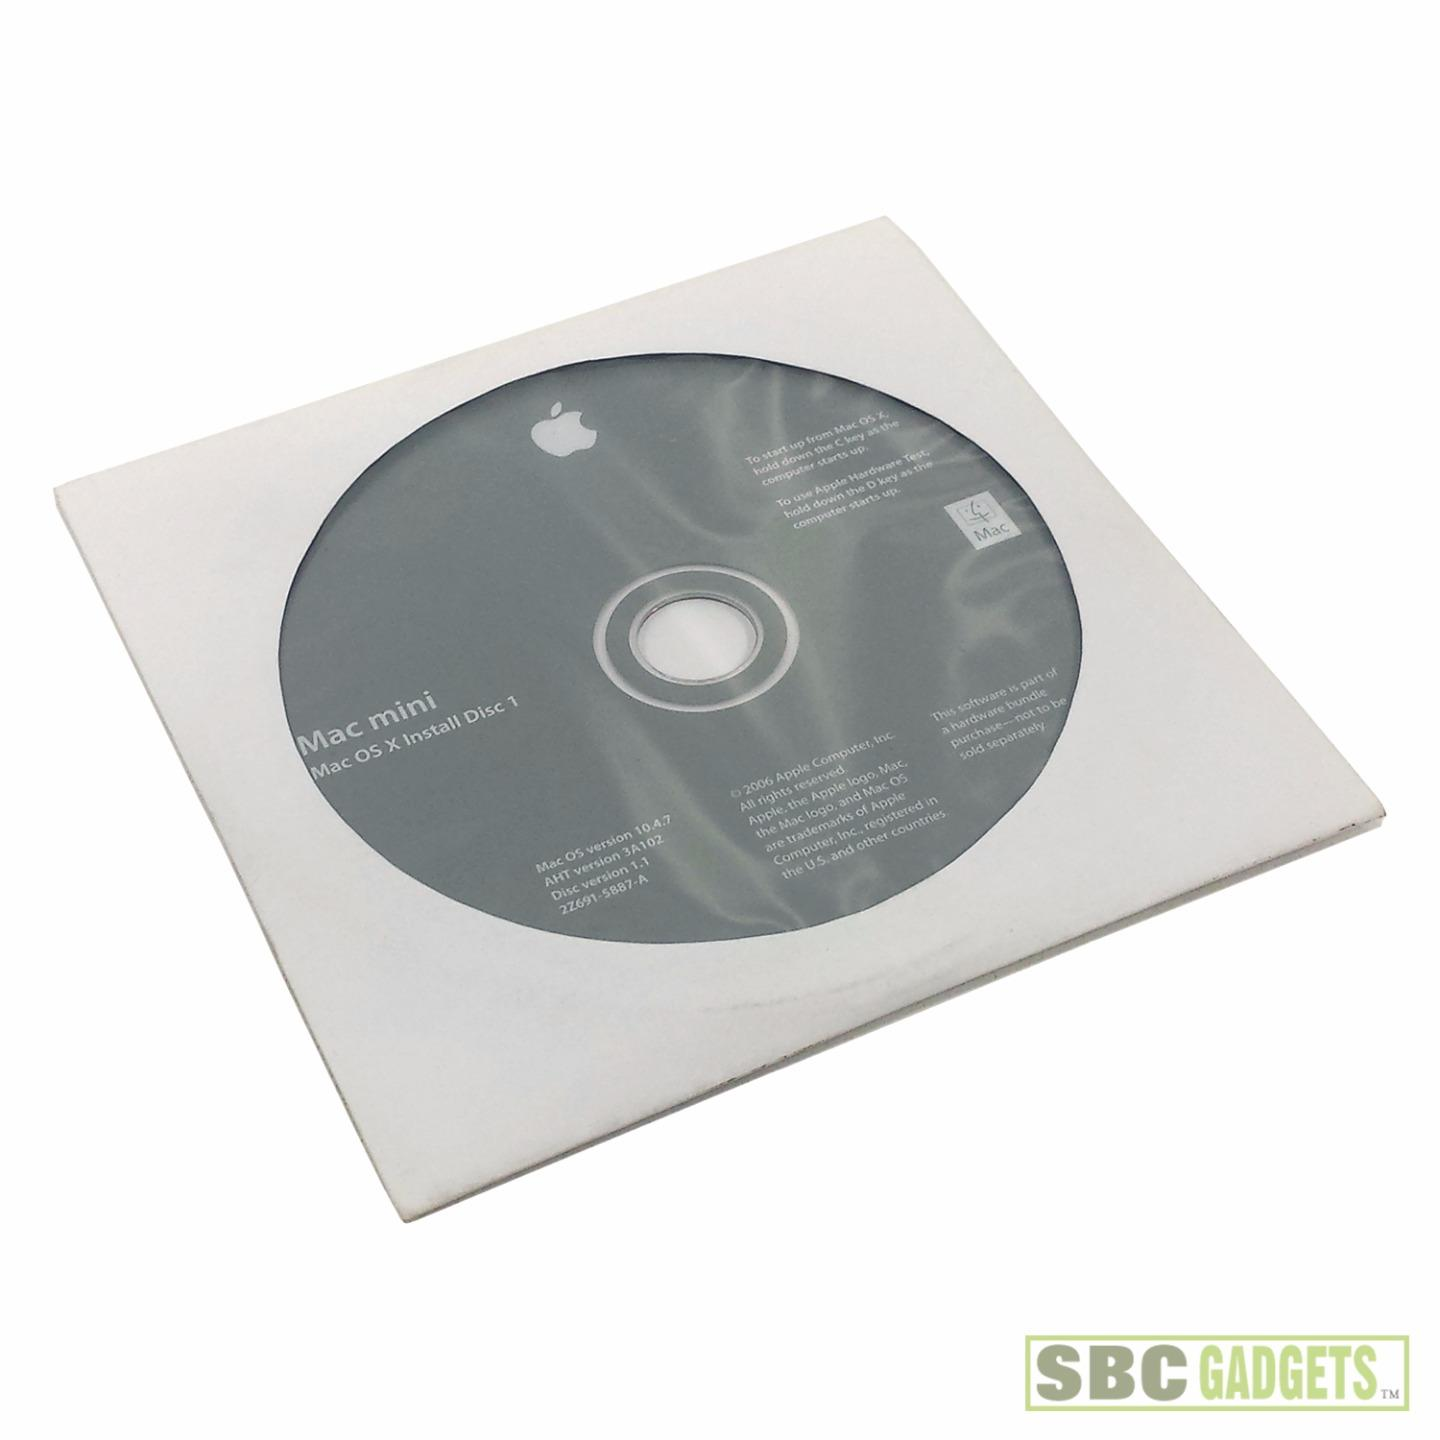 How to write snow leopard dmg to dvd - How to install Mac OS